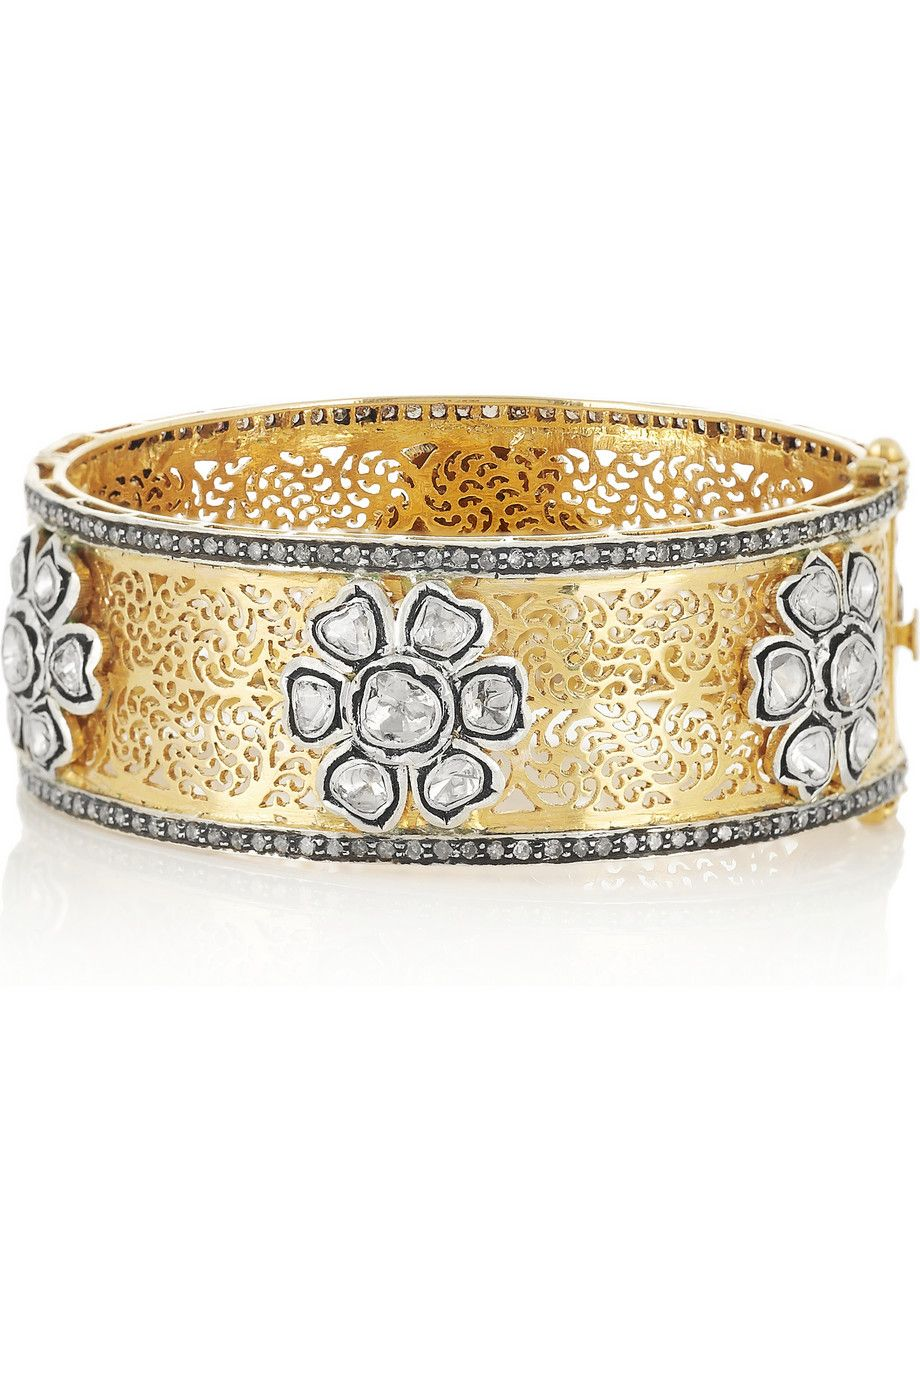 Artisan karat goldplated sterling silver diamond bangle